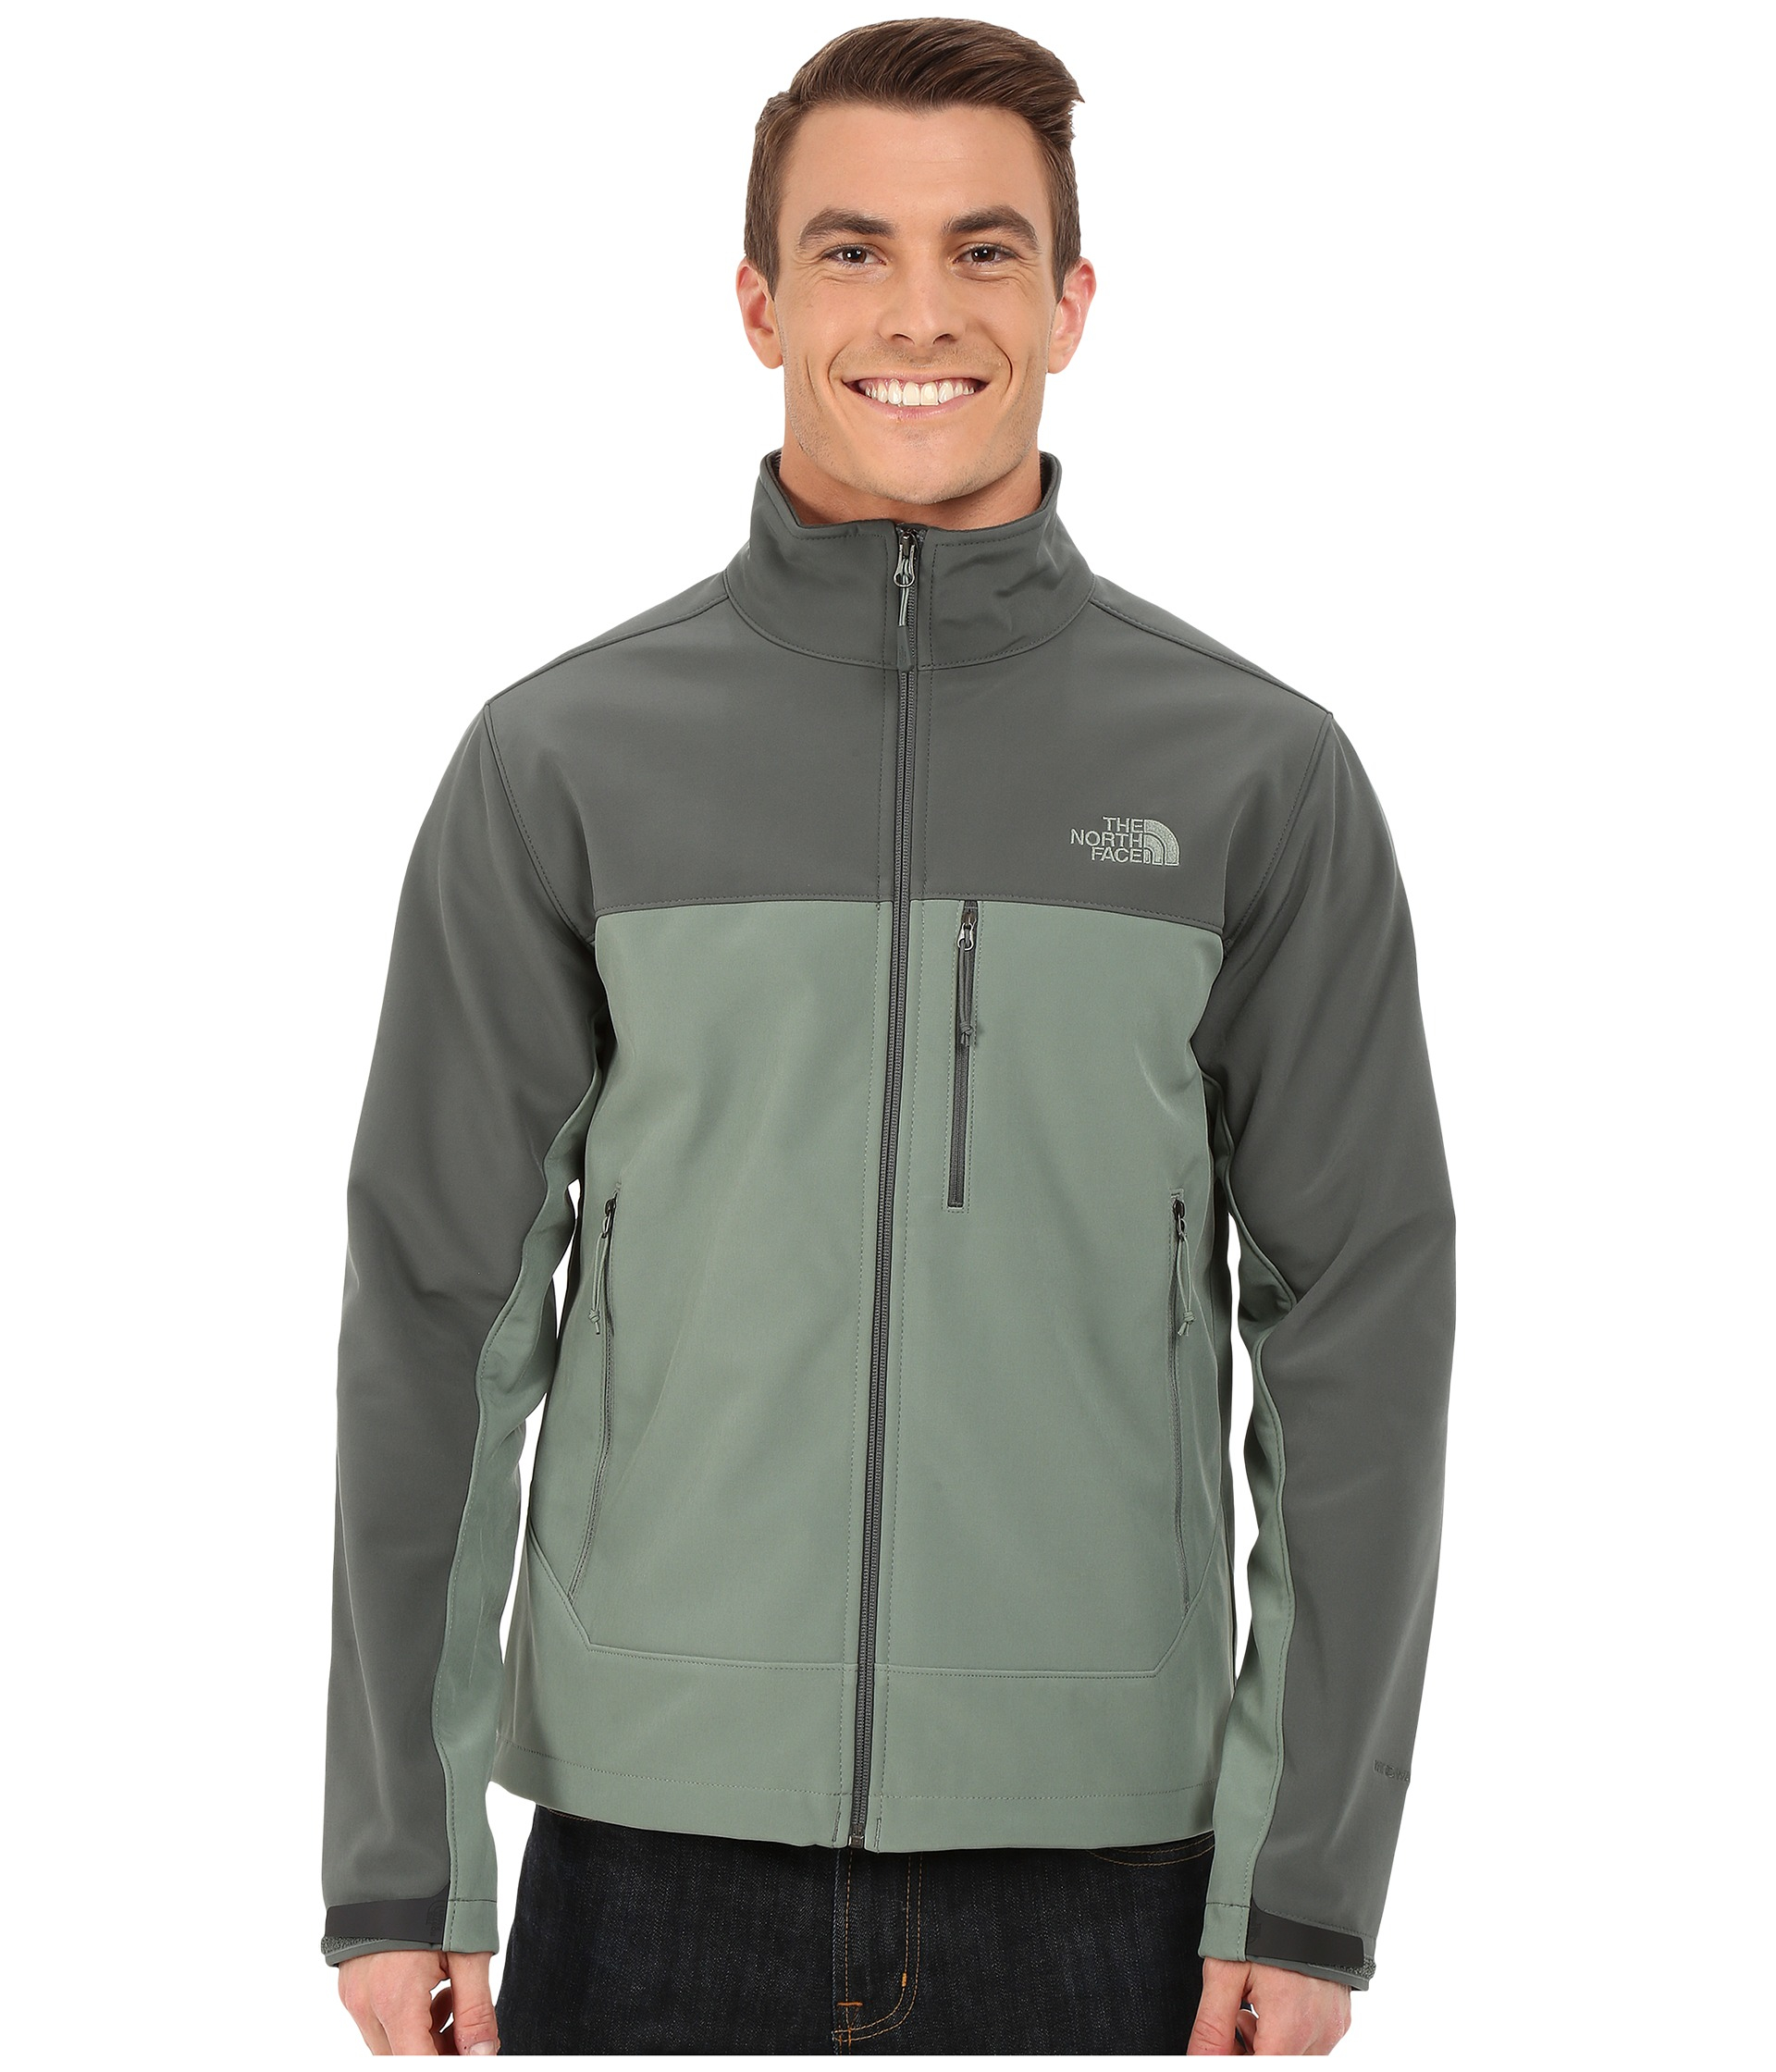 ced4c7f1ebc ... wholesale lyst the north face apex bionic jacket in green for men 244a9  3b6ae